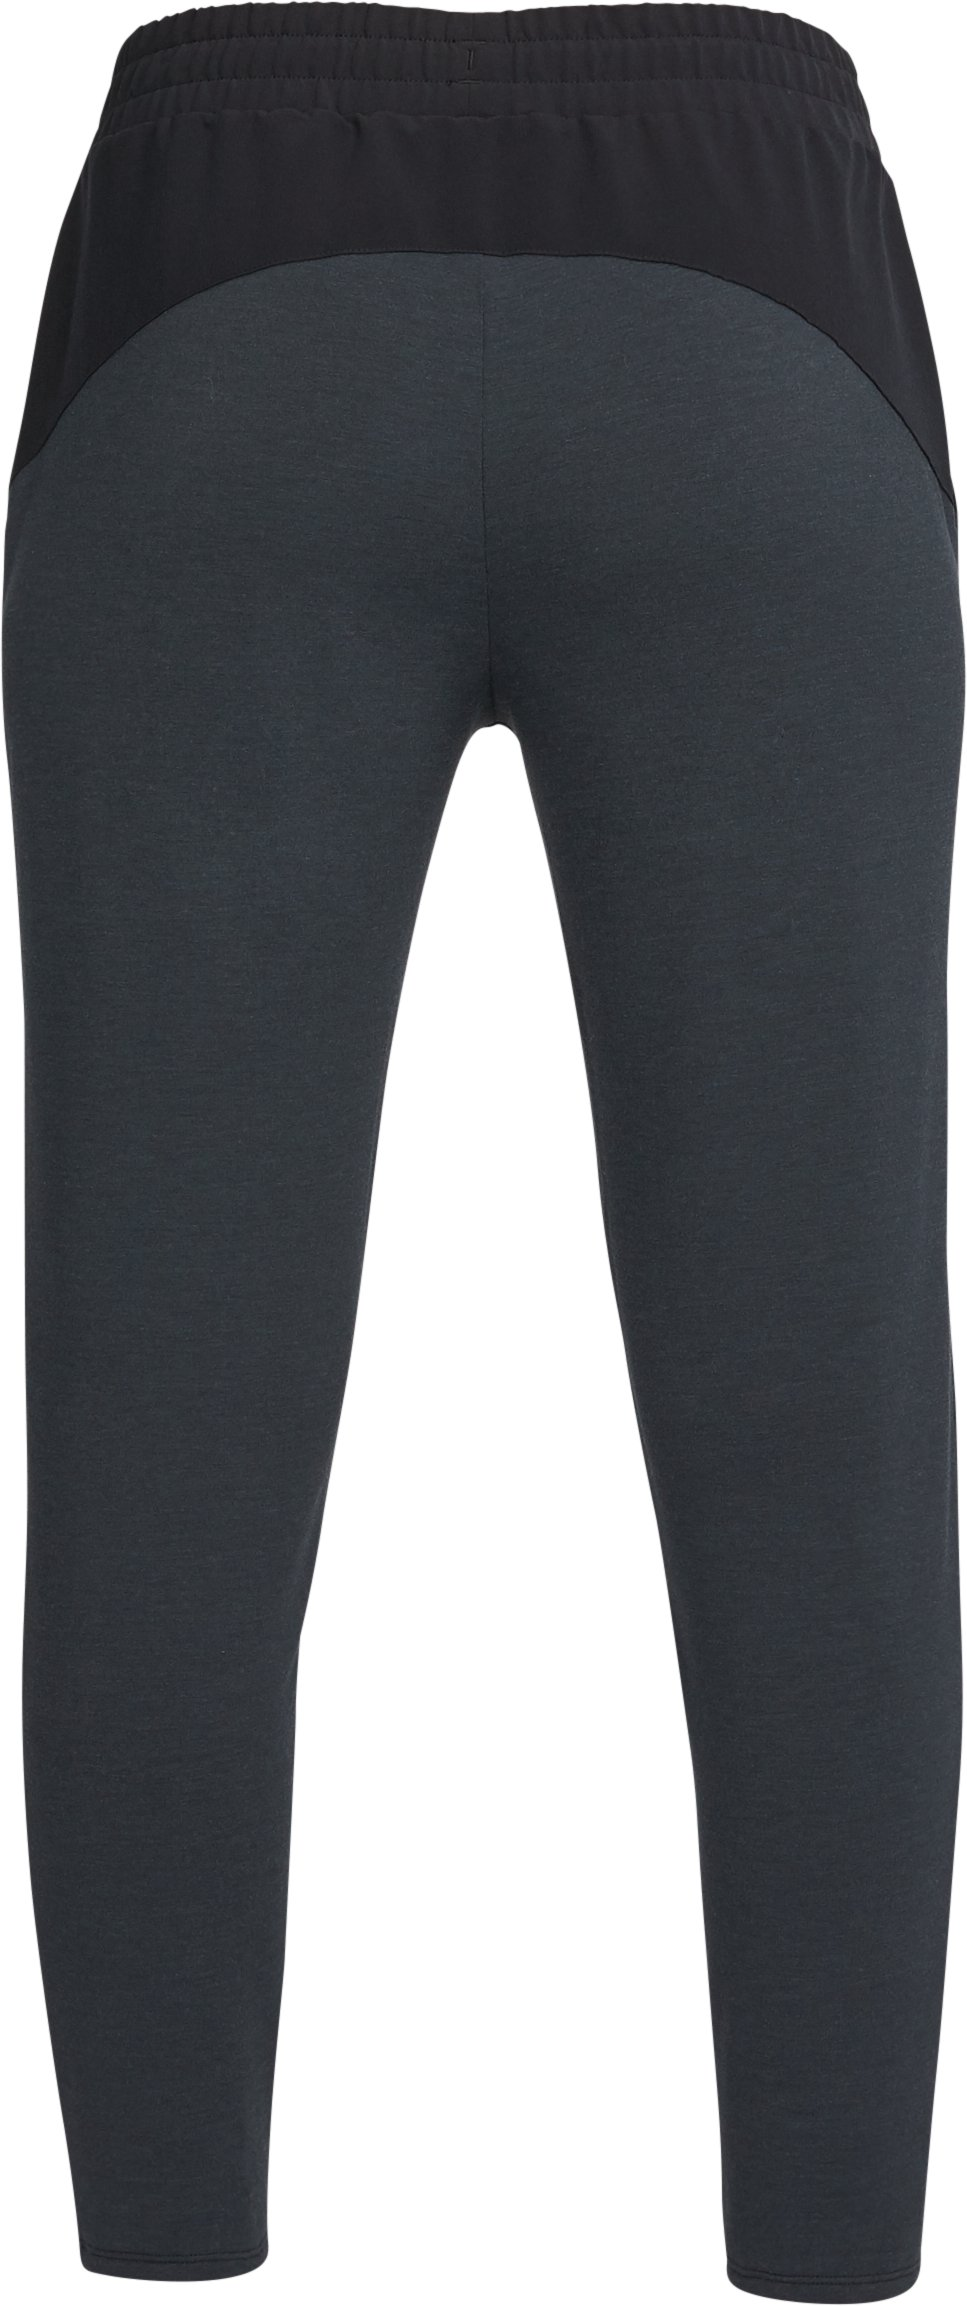 Women's UA Unstoppable World's Greatest Knit Sweat Pants, Black , undefined